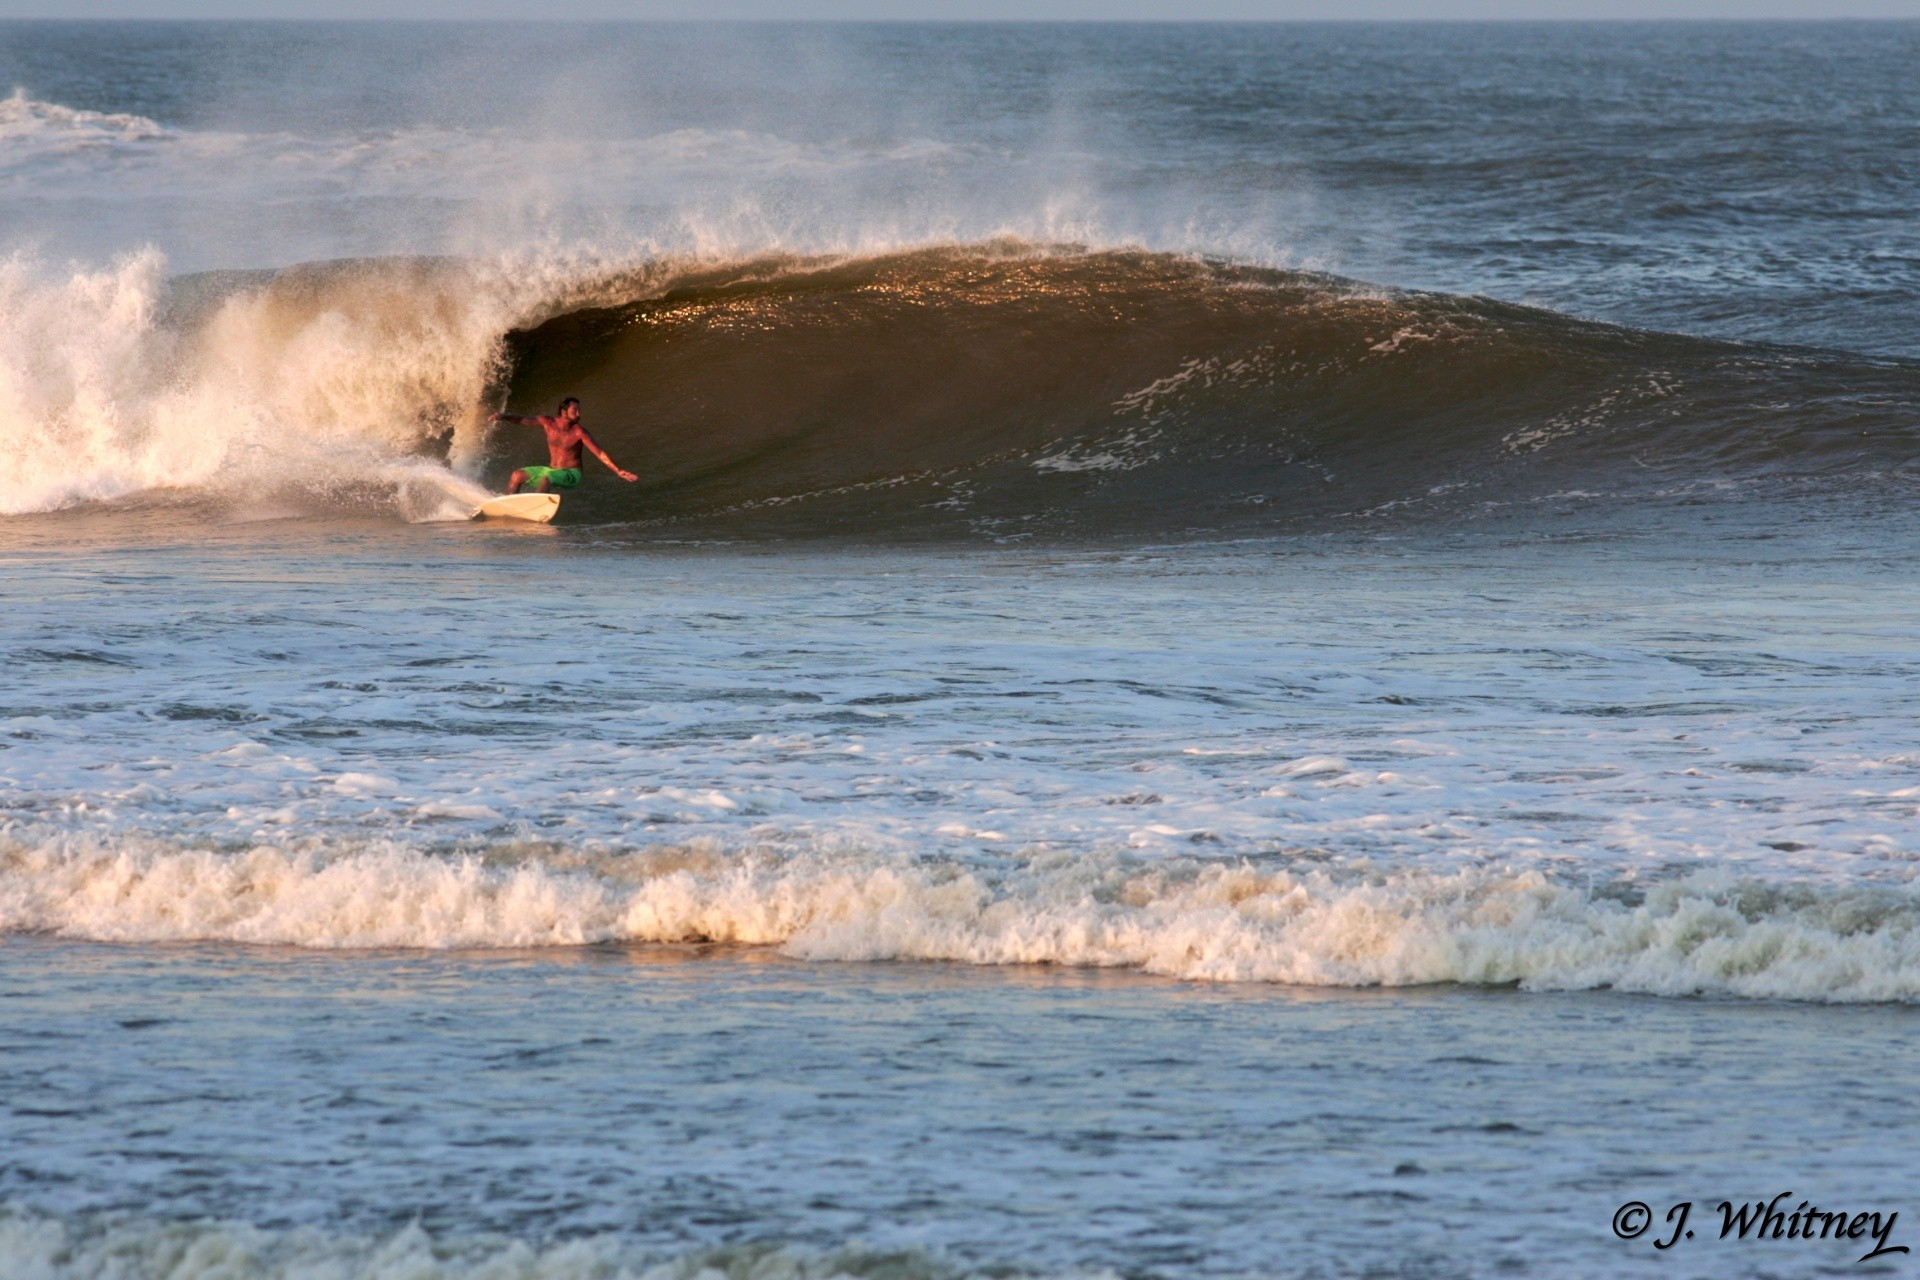 J.Whitney's photo of Outer Banks Hurricane